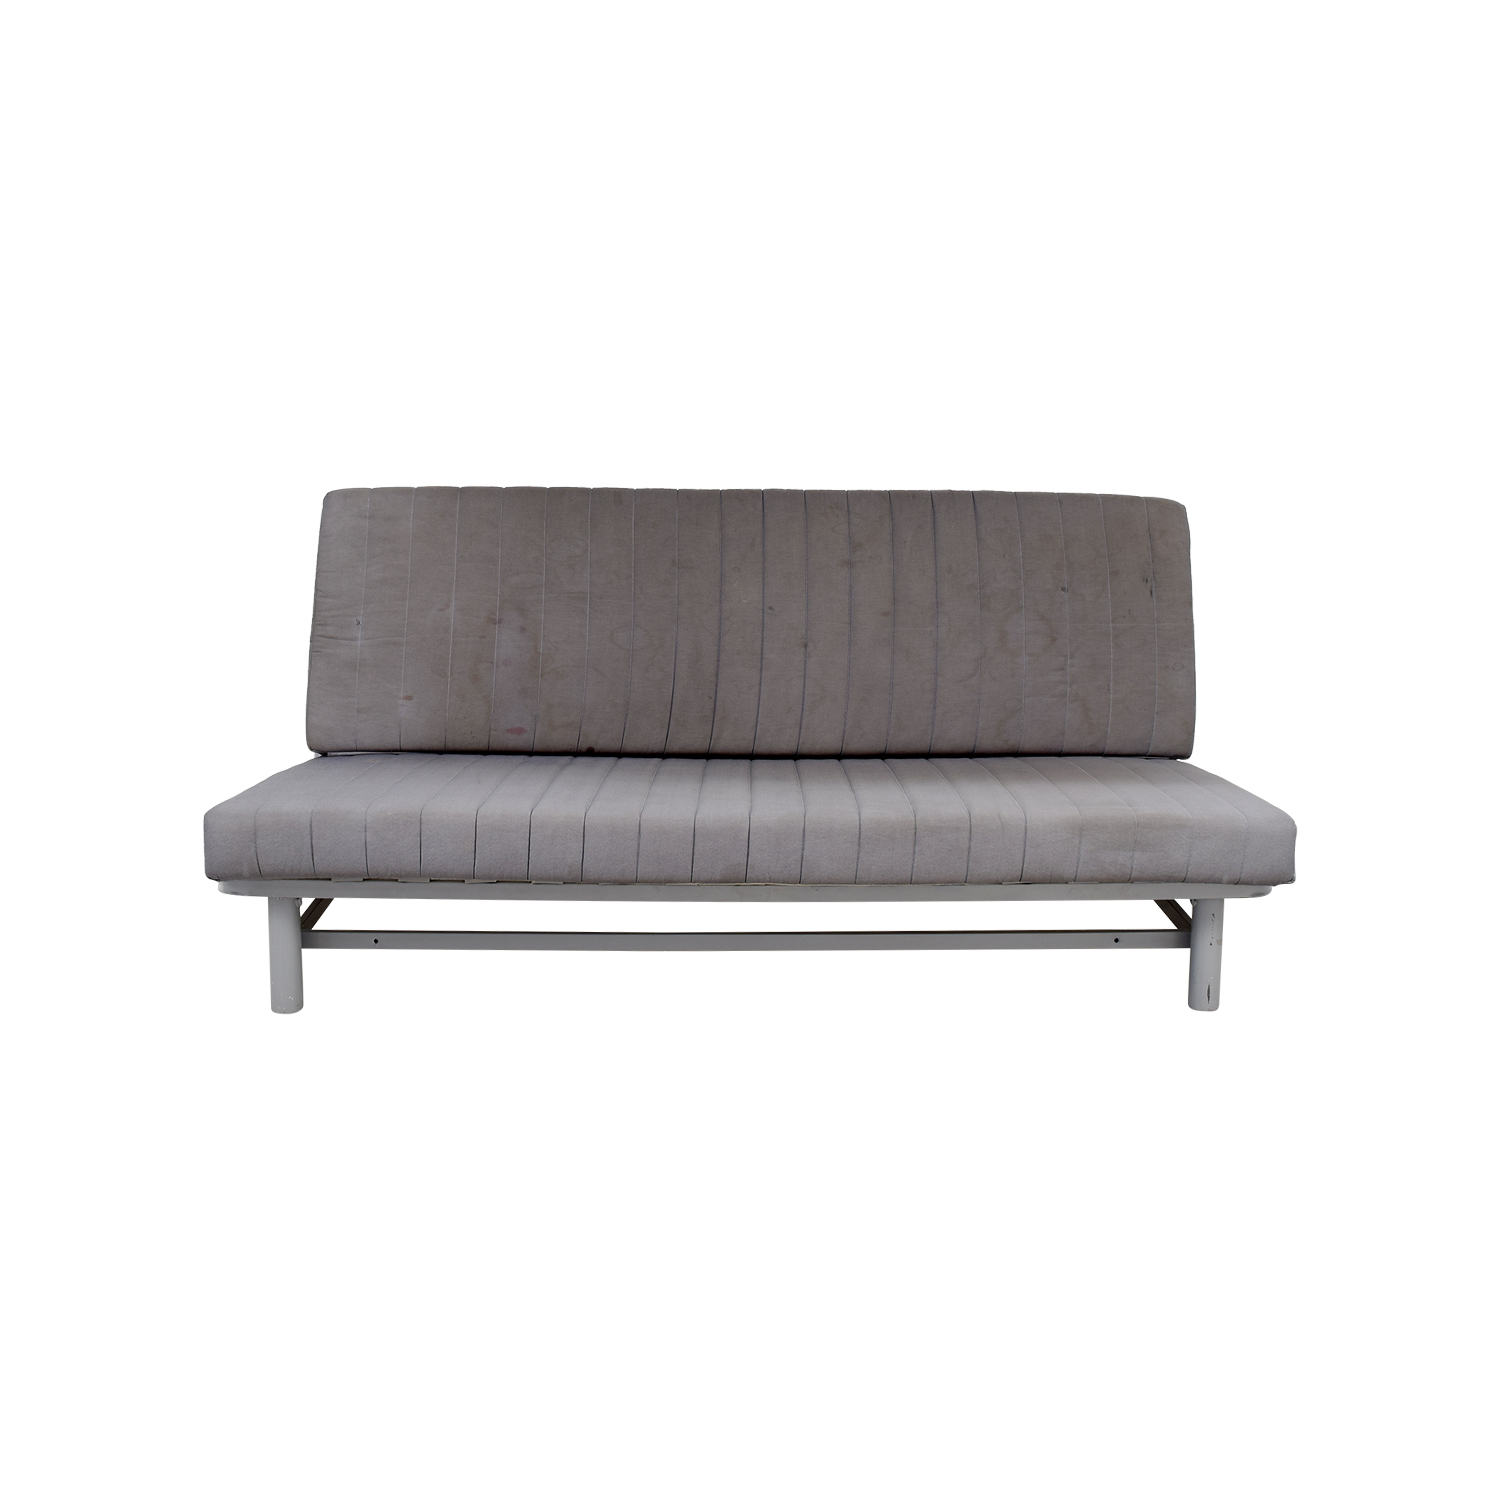 IKEA IKEA Grey Sofa Bed on sale